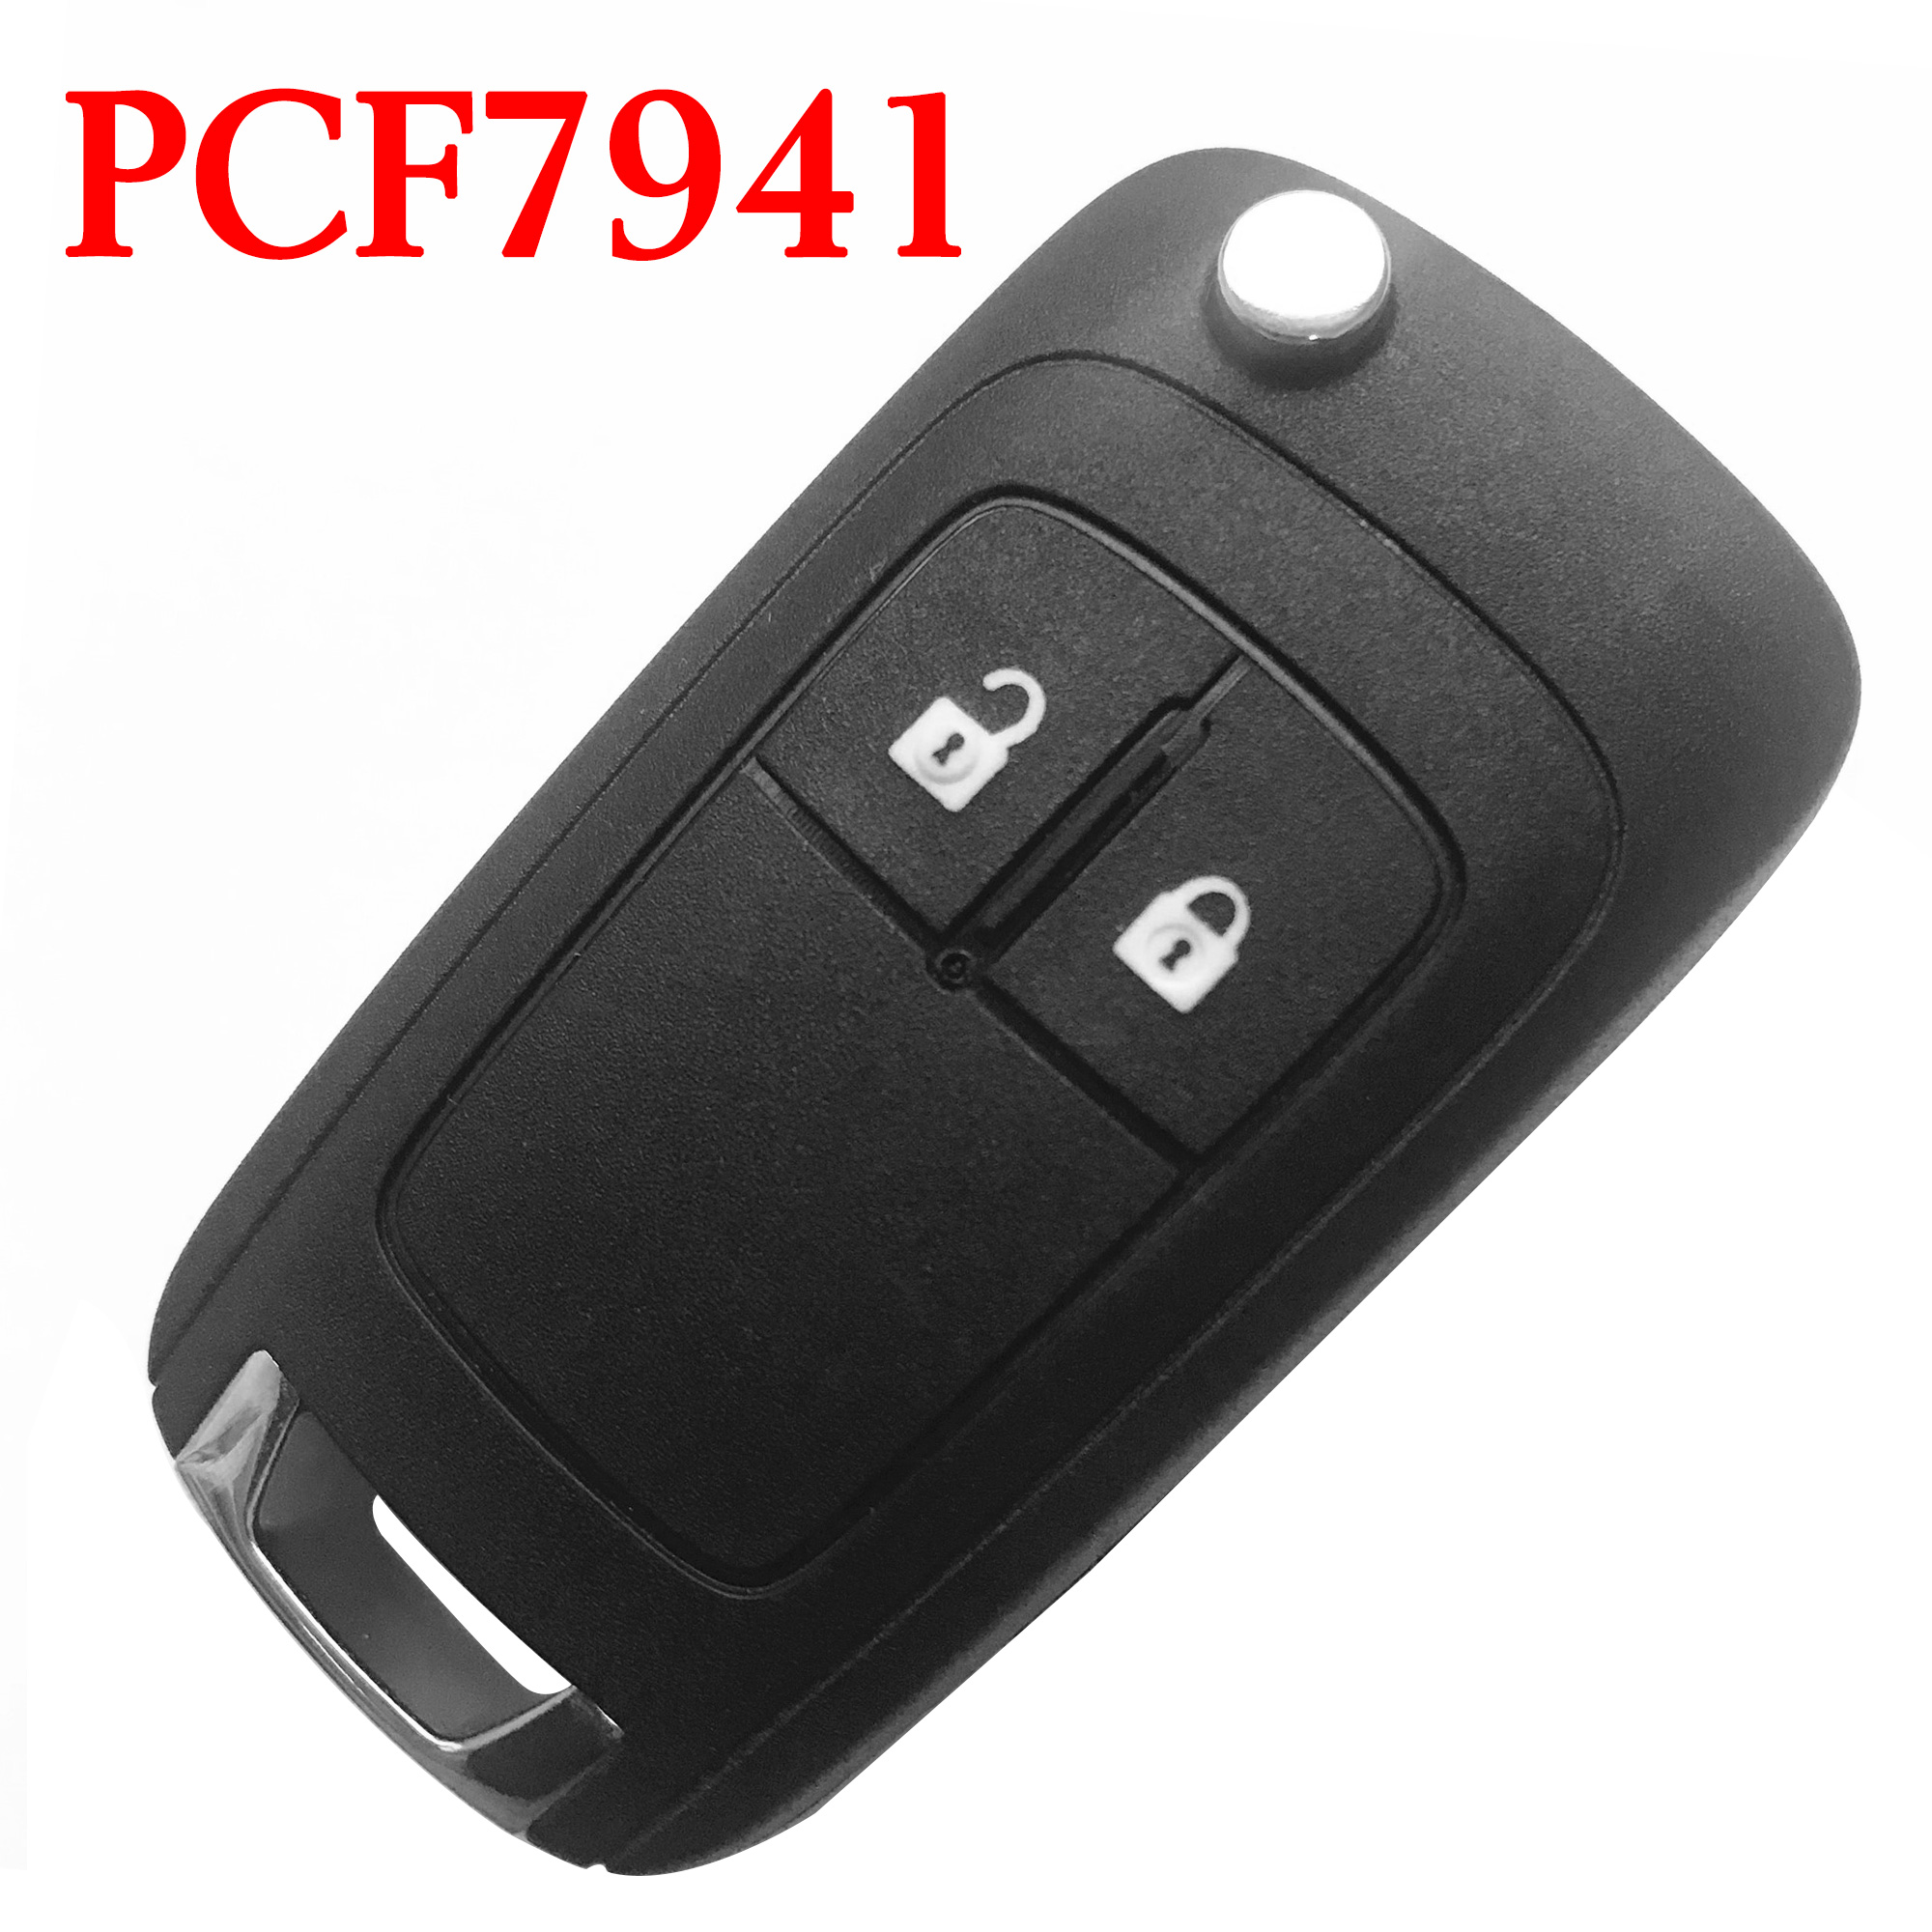 2 Buttons 434 MHz Flip Remote Key for Opel Astra H & Zafira B - PCF7941